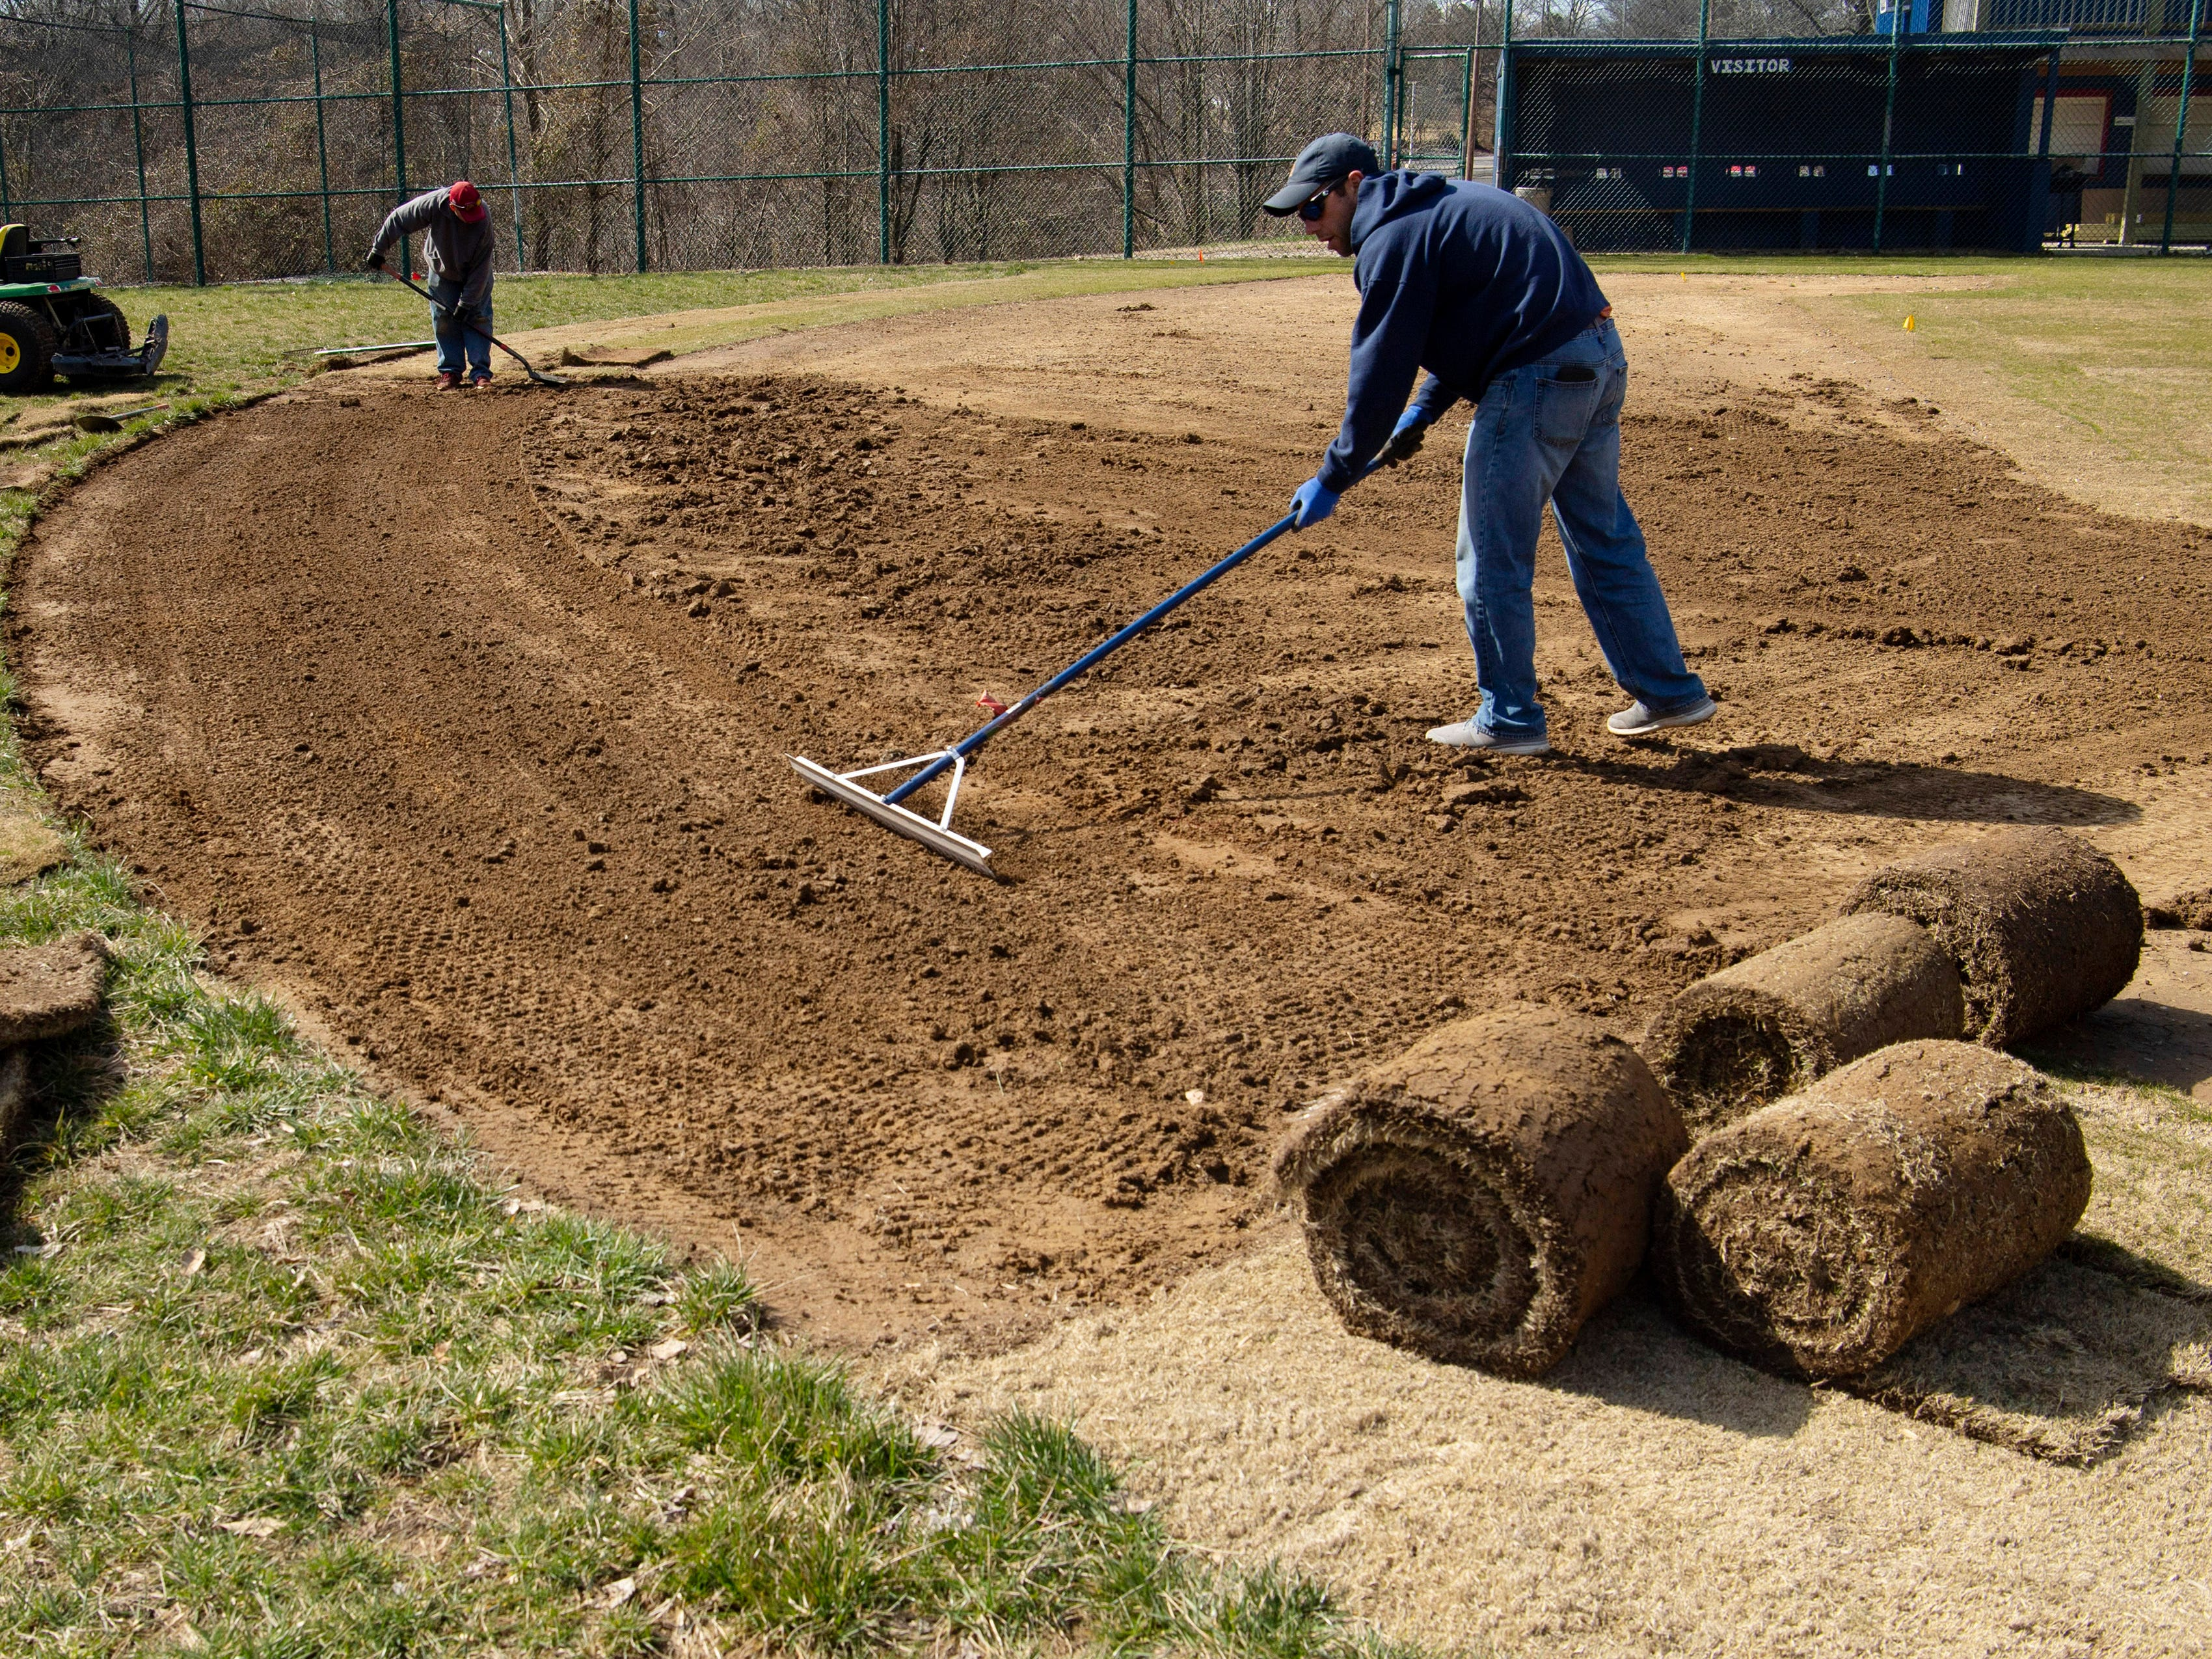 Andy Minnette, right, and Brad Davis level the dirt of the infield at Highland Baseball's Harvey Crow Memorial Field in Evansville Monday afternoon. The Tenbarge Seed Company employees were fixing a spot that had settled behind second base and water was collecting. Minnette said the field would be ready for action this season.